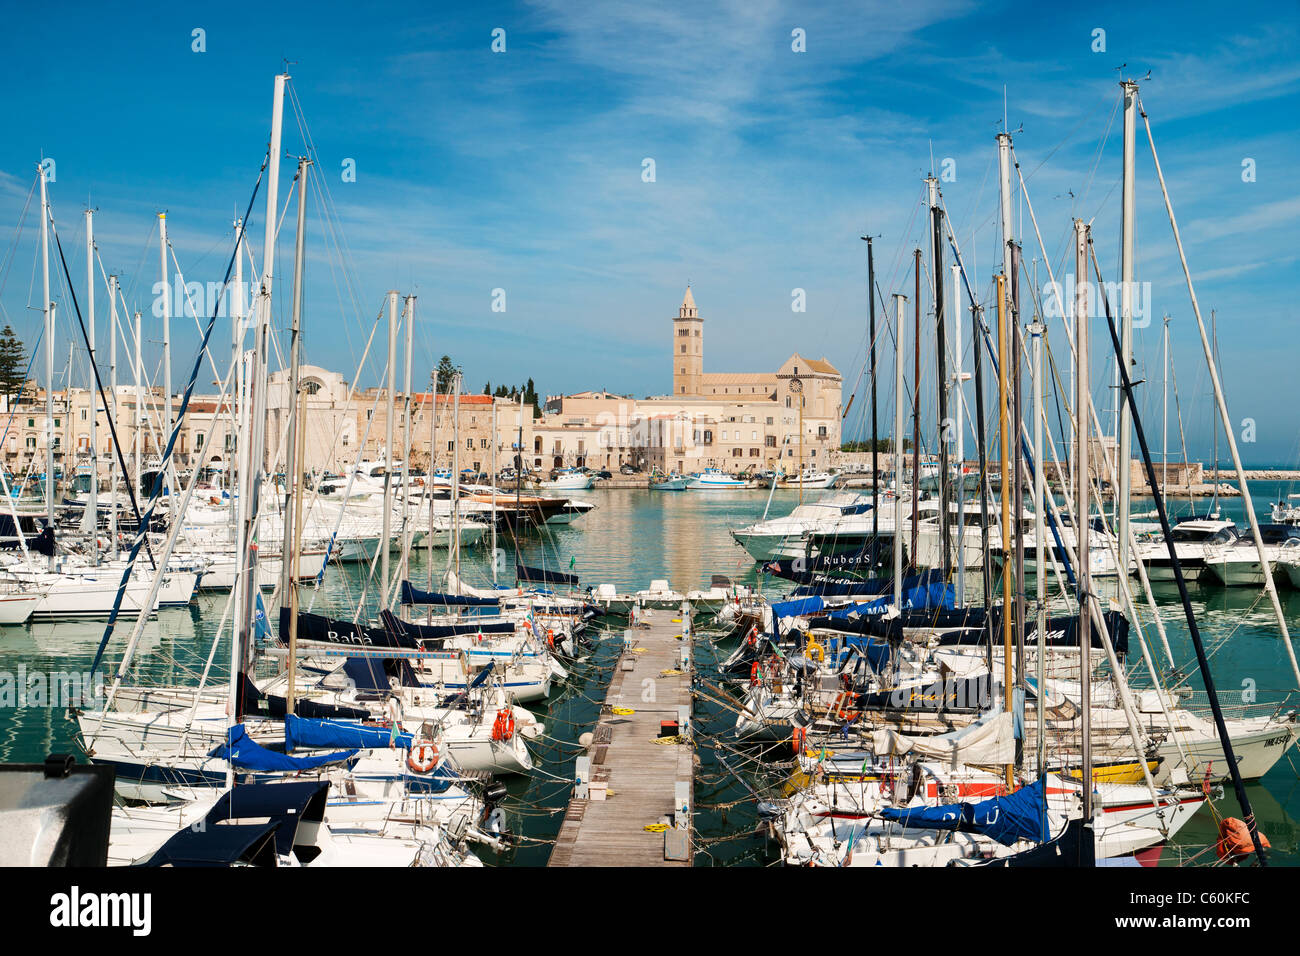 Trani habour and cathedral, Trani, Southern Italy, EU - Stock Image